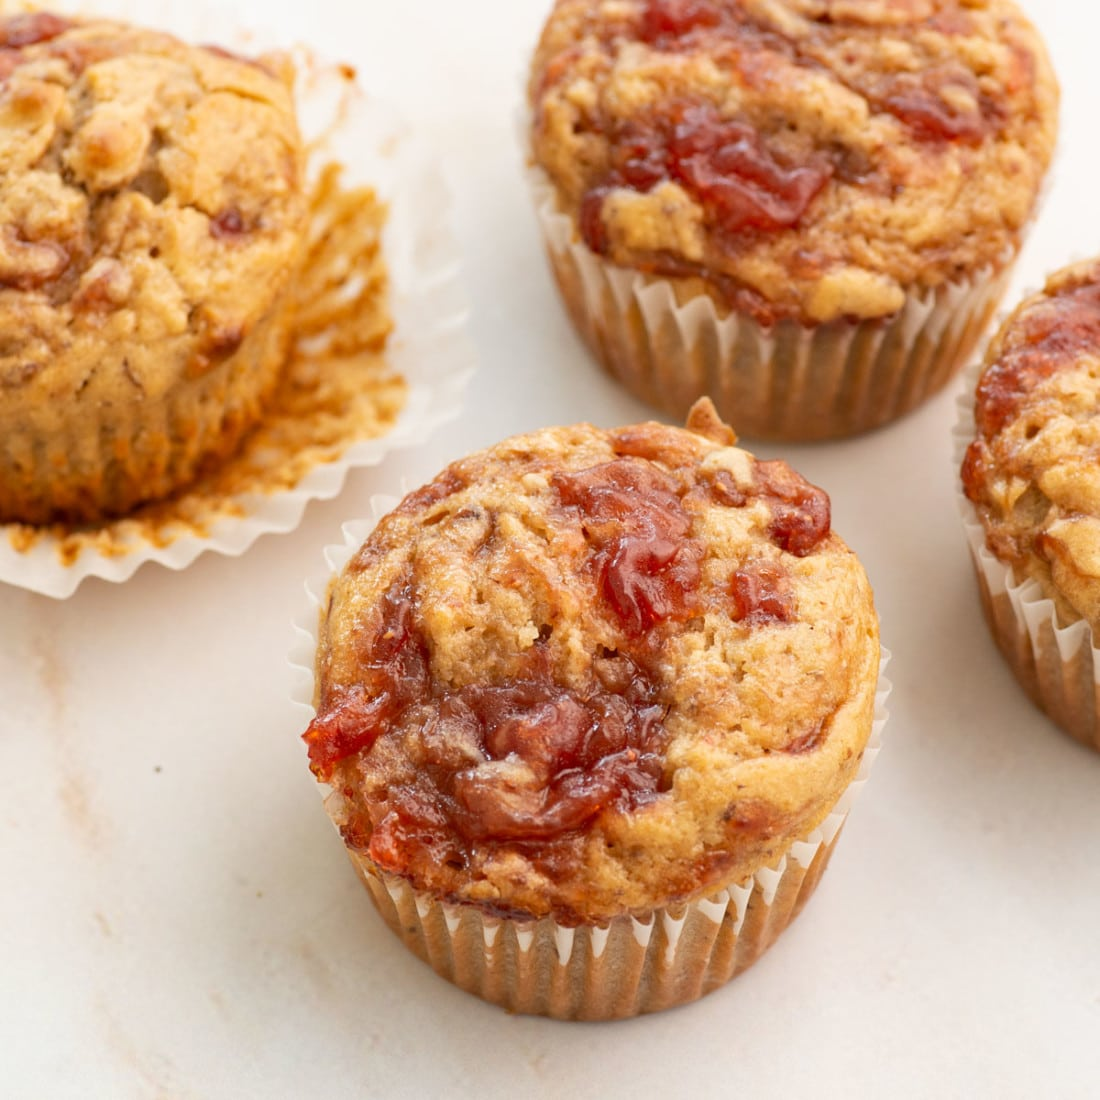 side view of vegan muffins made with peanut butter and jelly